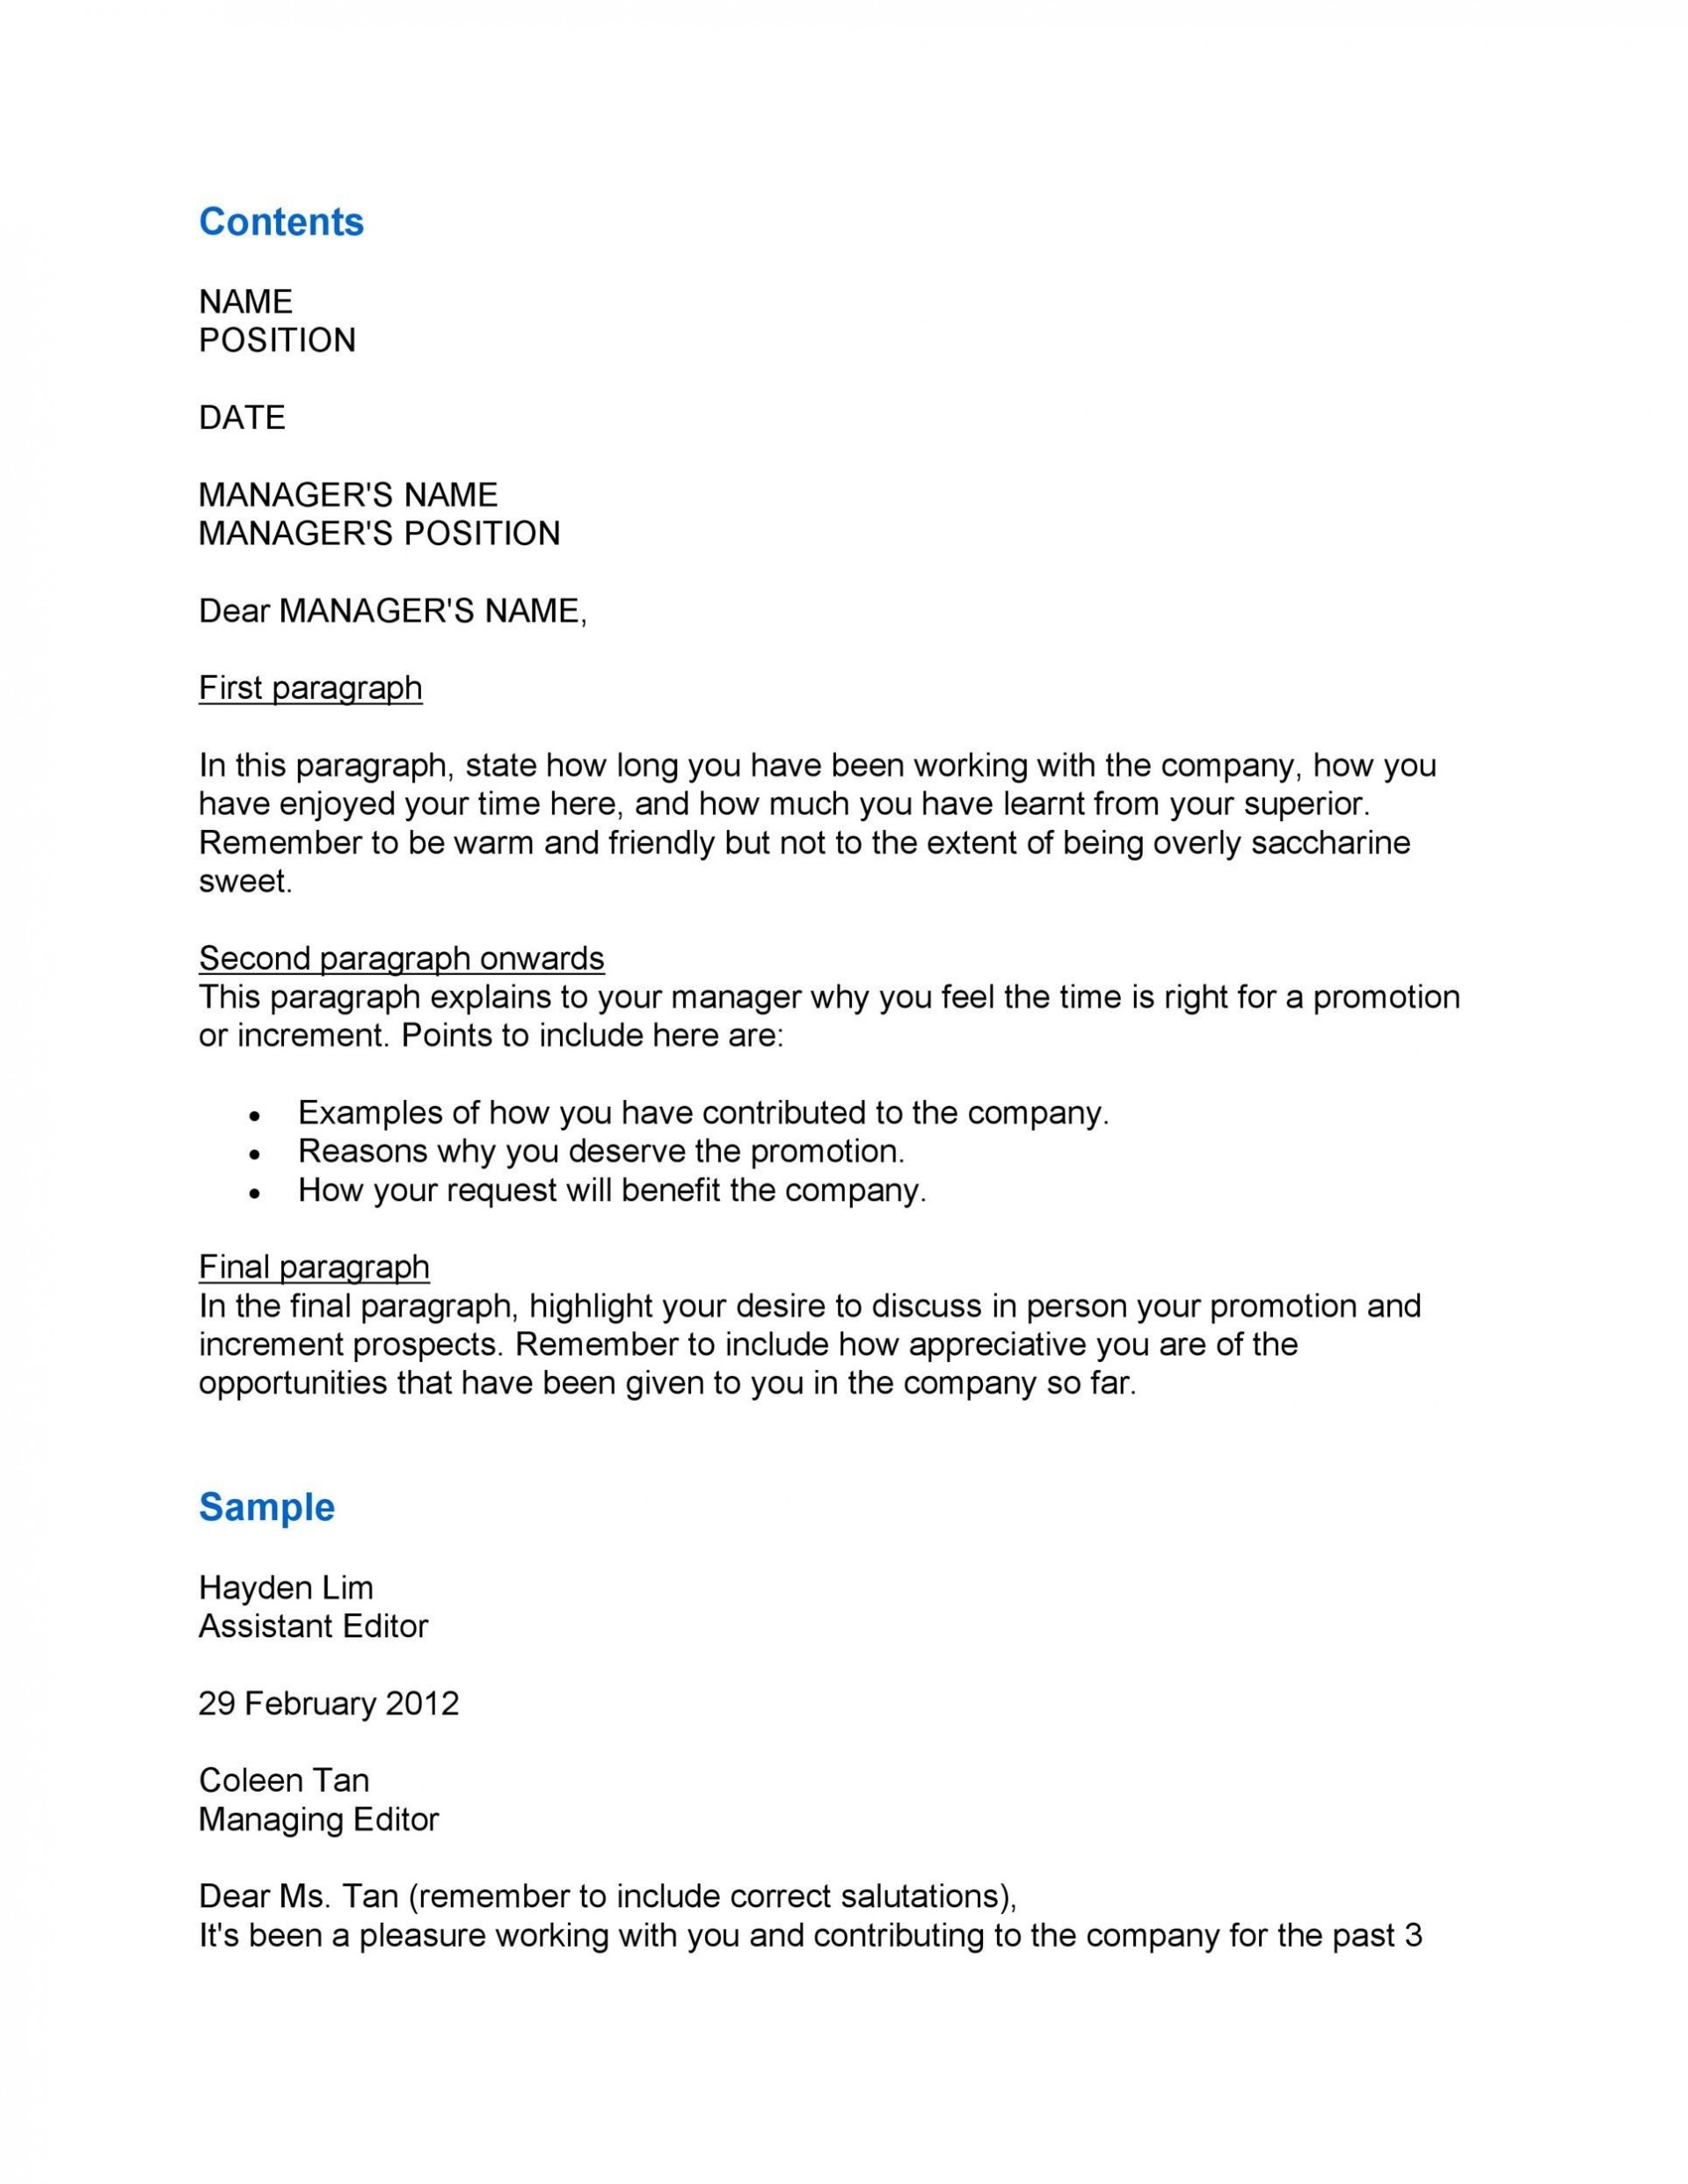 008 Fascinating Salary Increase Letter Template Picture  From Employer To Employee Australia No For1920